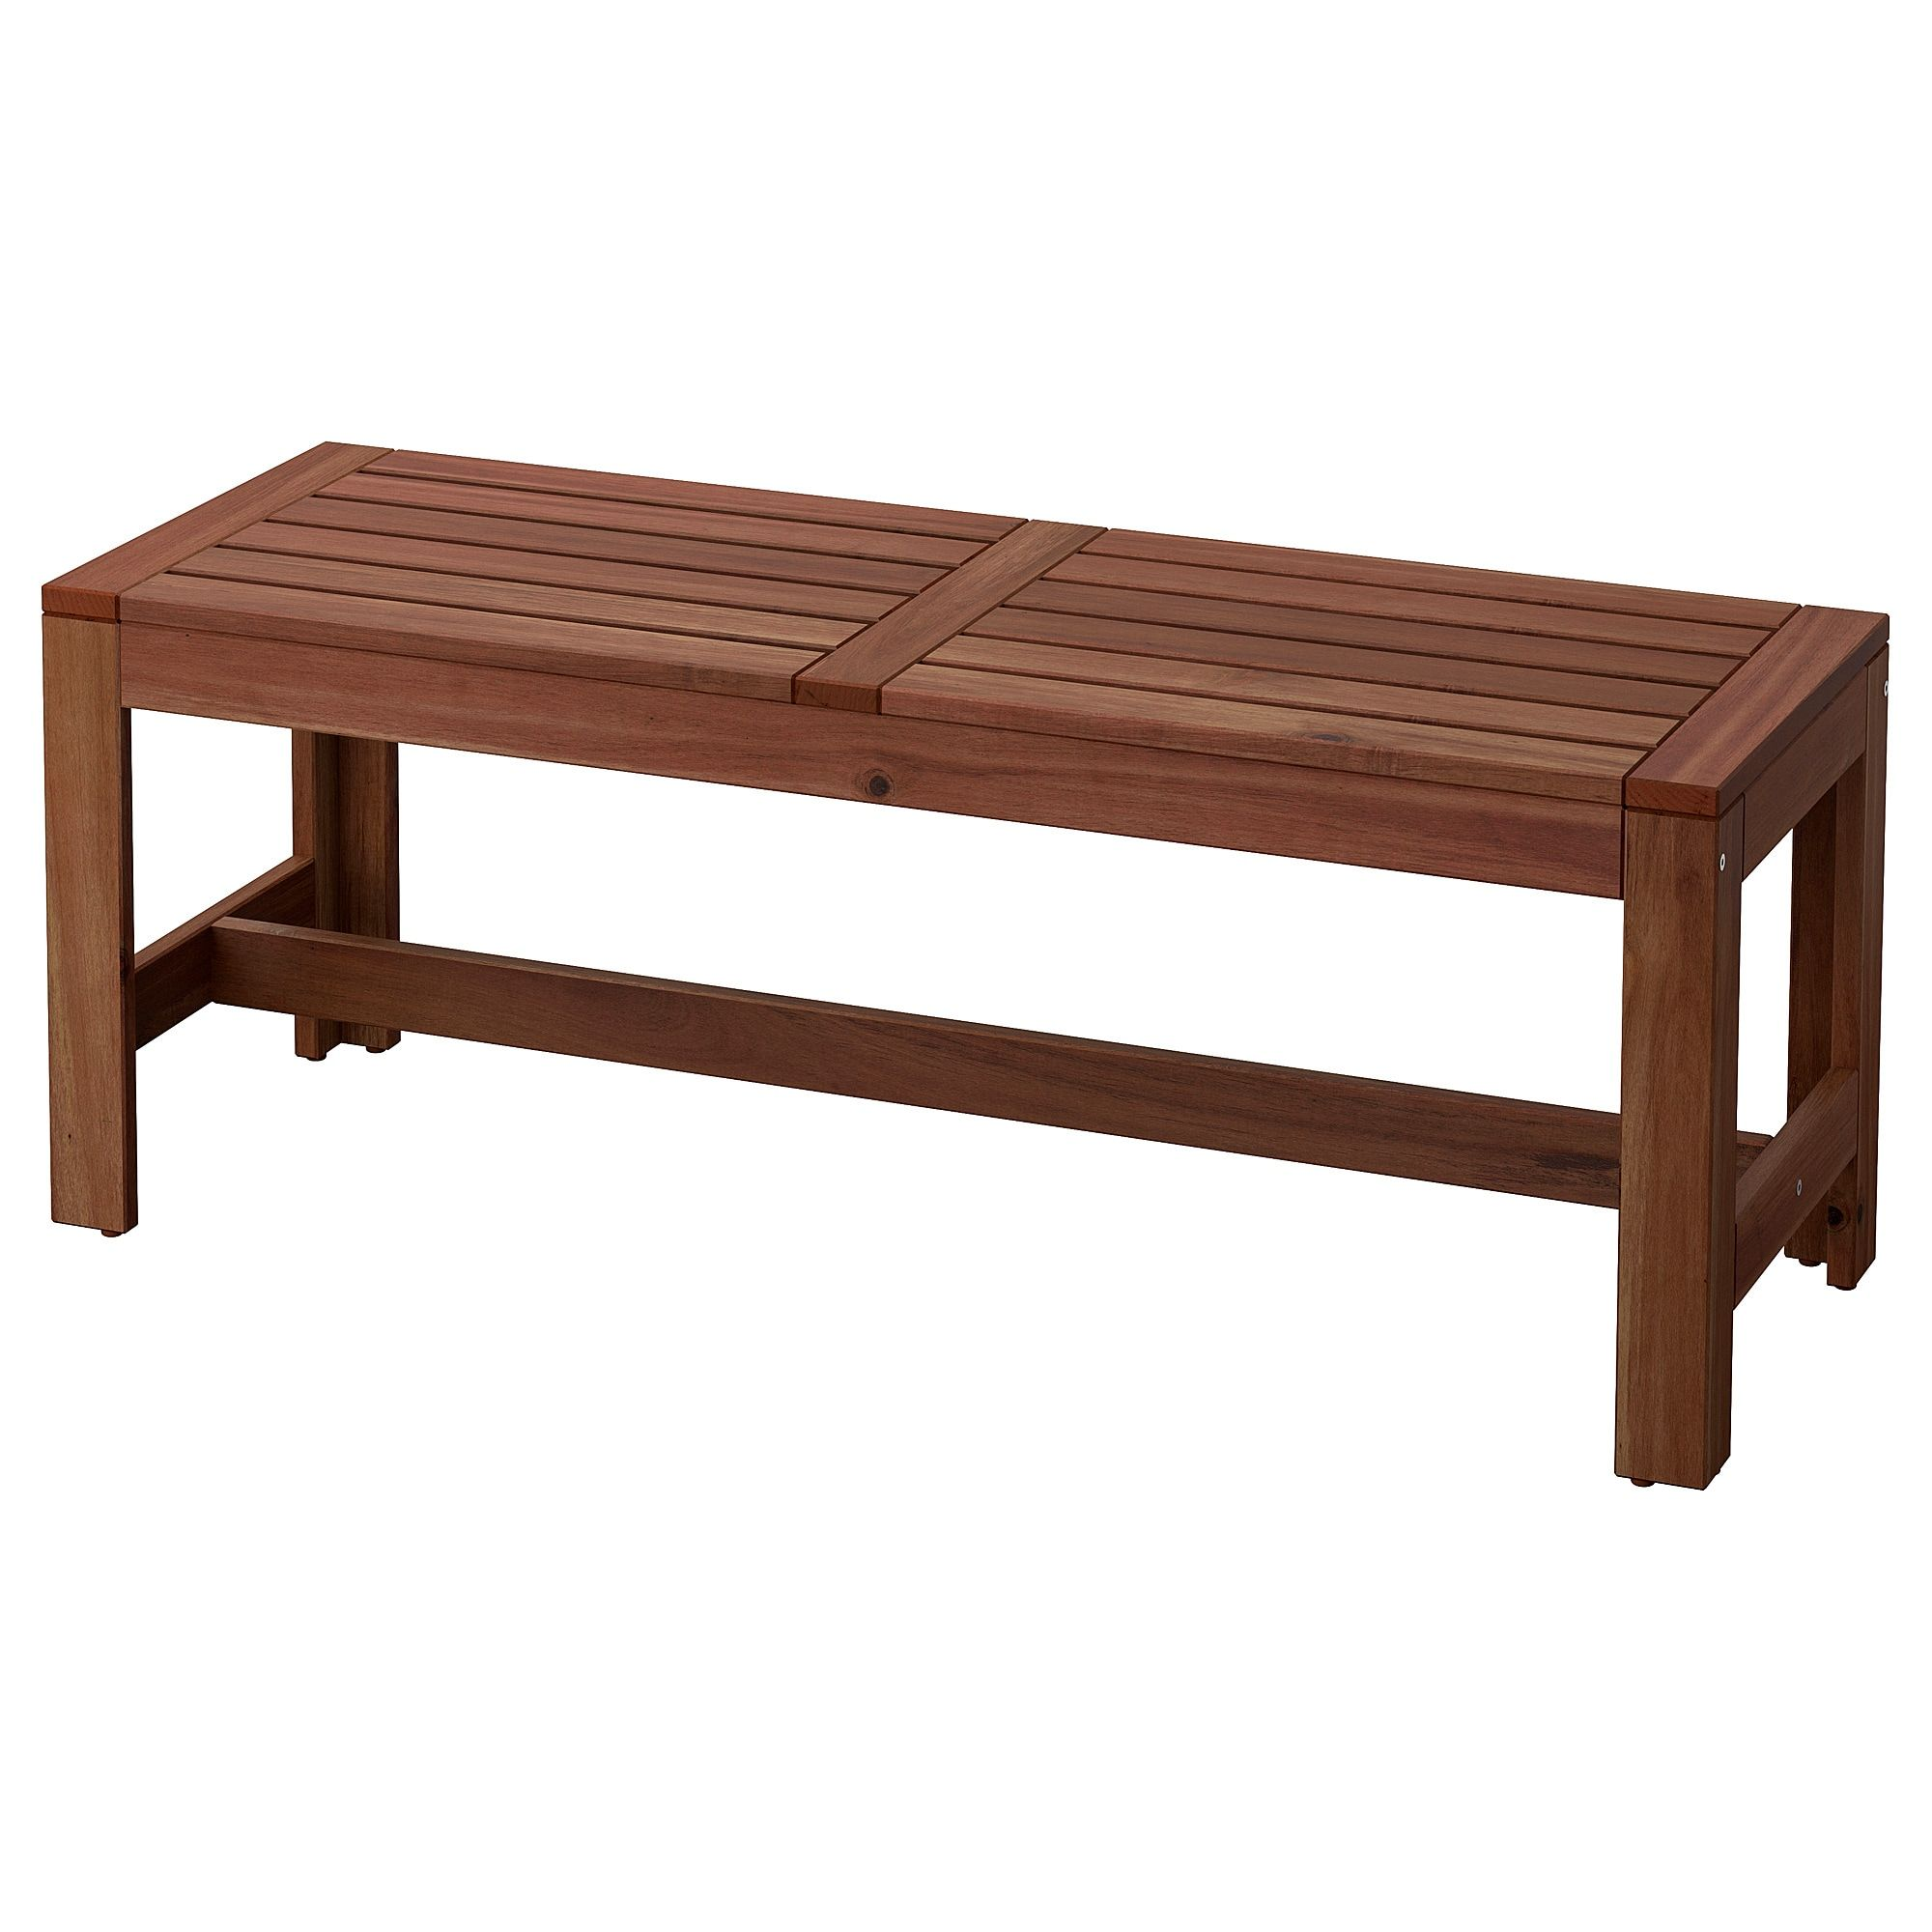 Applaro Bench Outdoor Brown Stained Brown 44 7 8 Outdoor